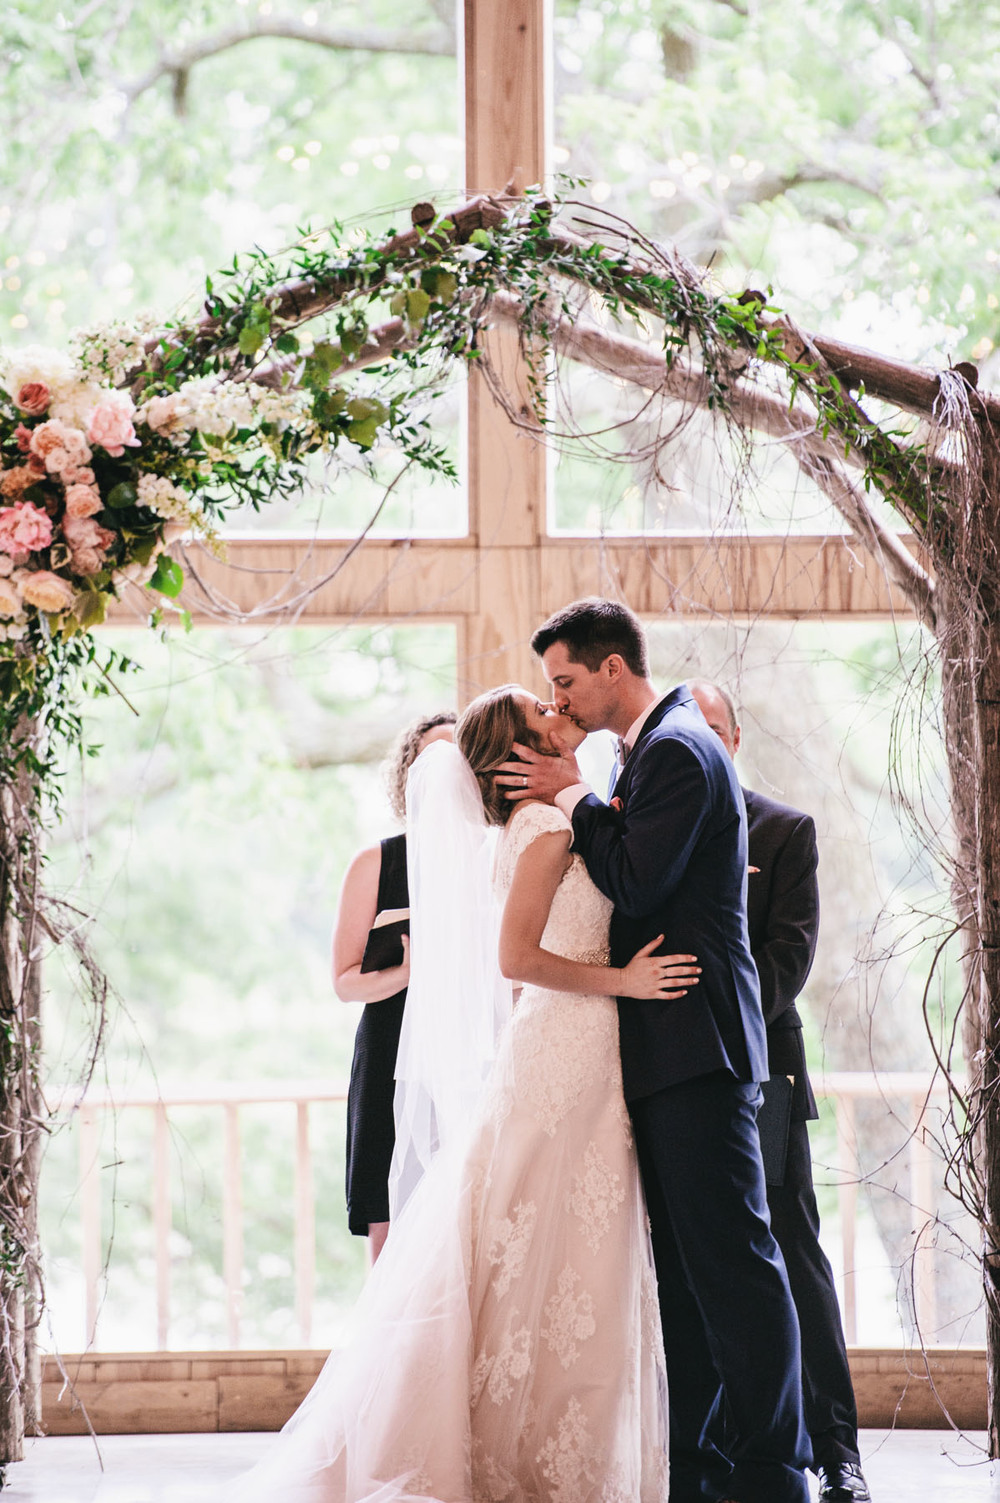 Bride & Groom Kiss Under Arch